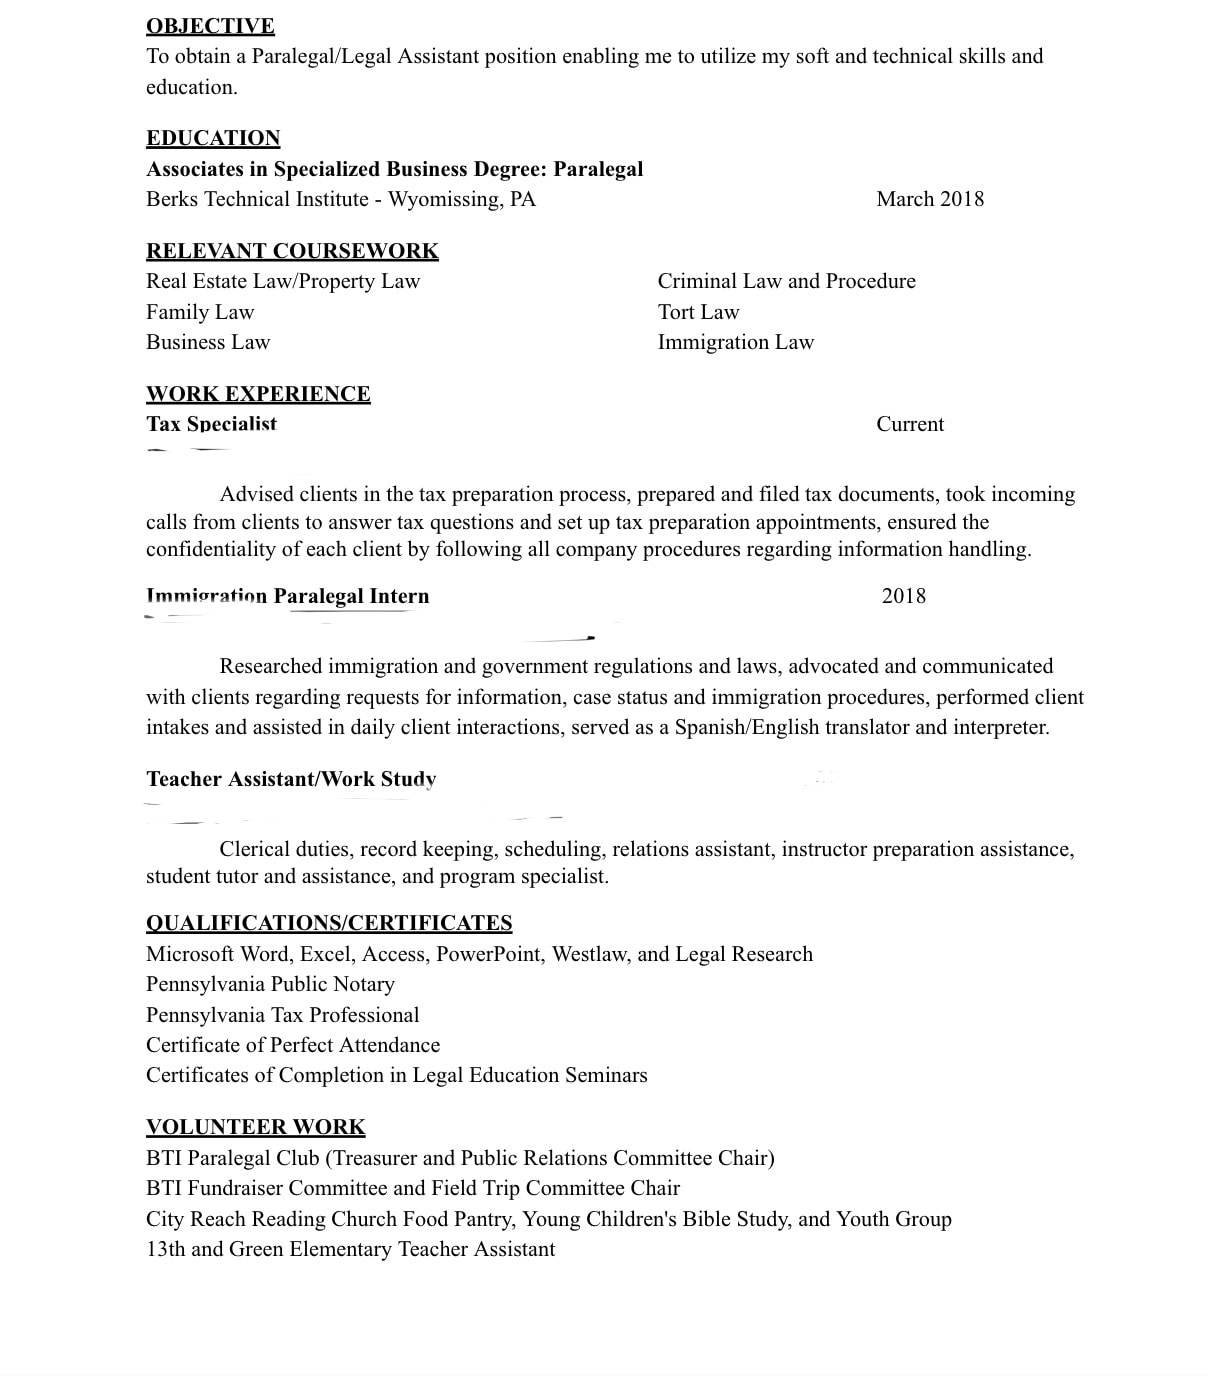 resume and cover letter editing or building